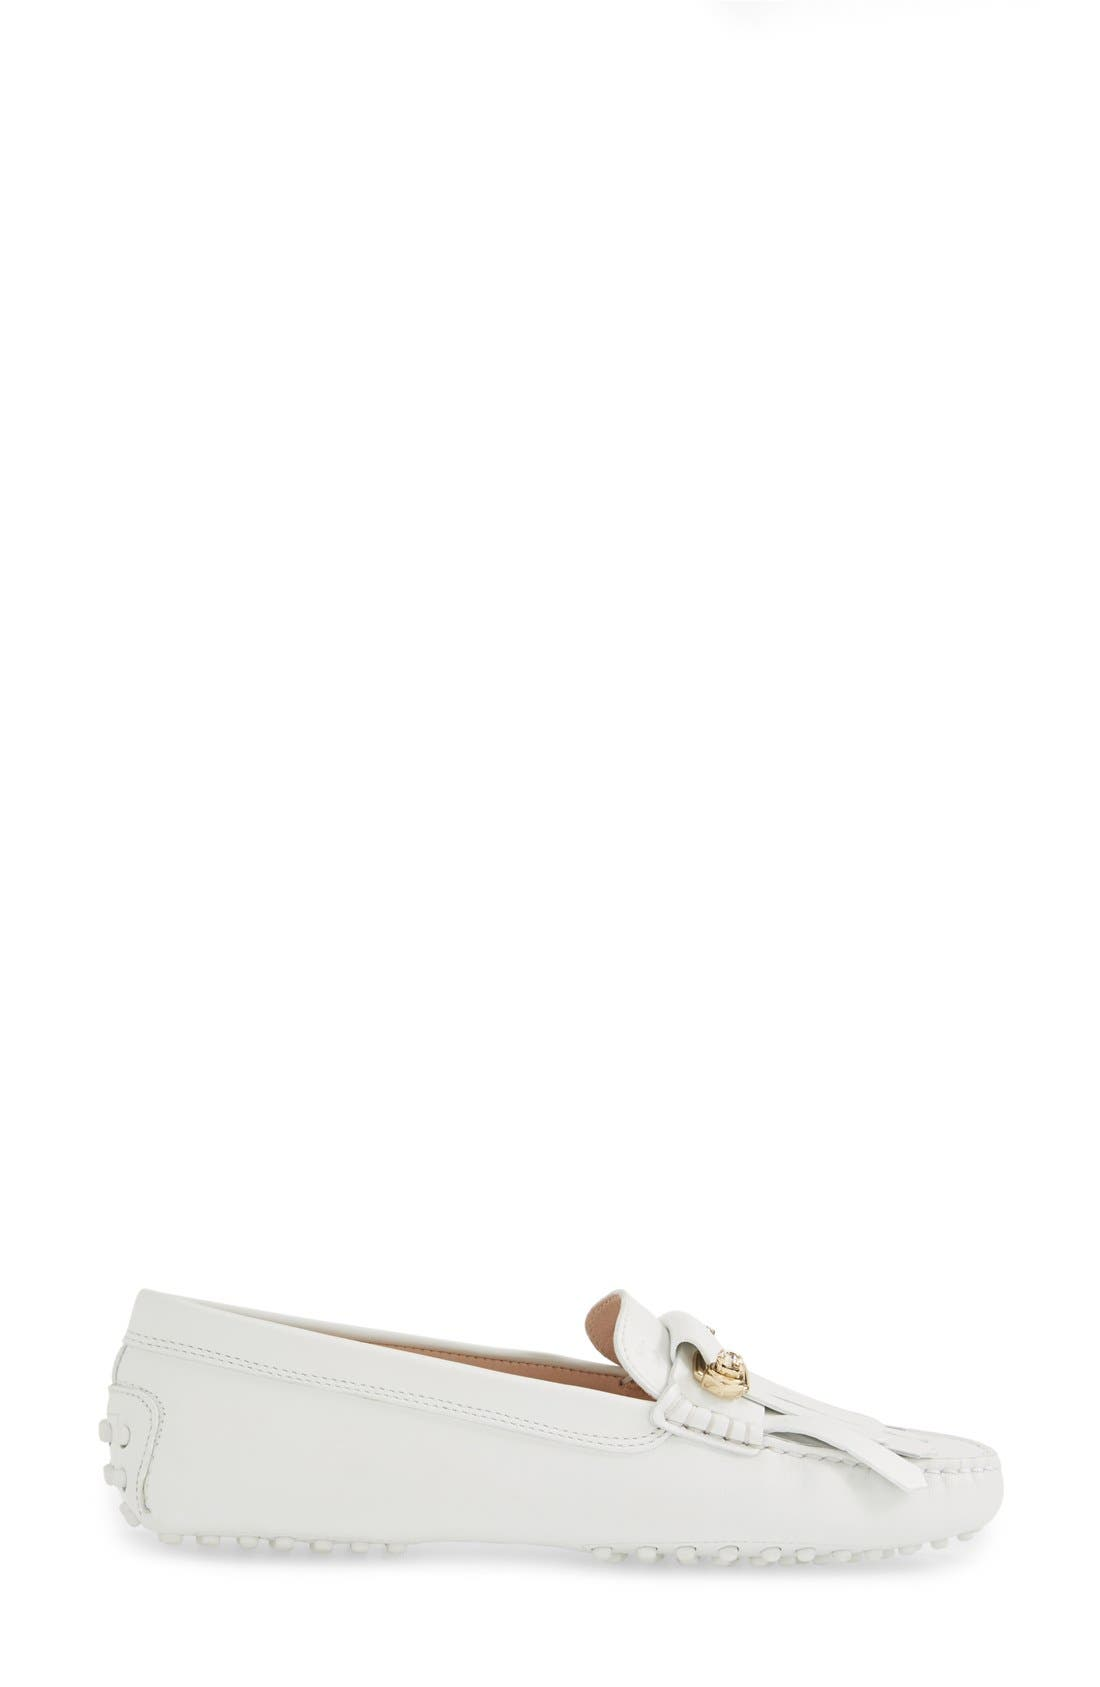 TOD'S,                             'Gommini' Crystal Embellished Fringed Leather Driving Moccasin,                             Alternate thumbnail 4, color,                             100